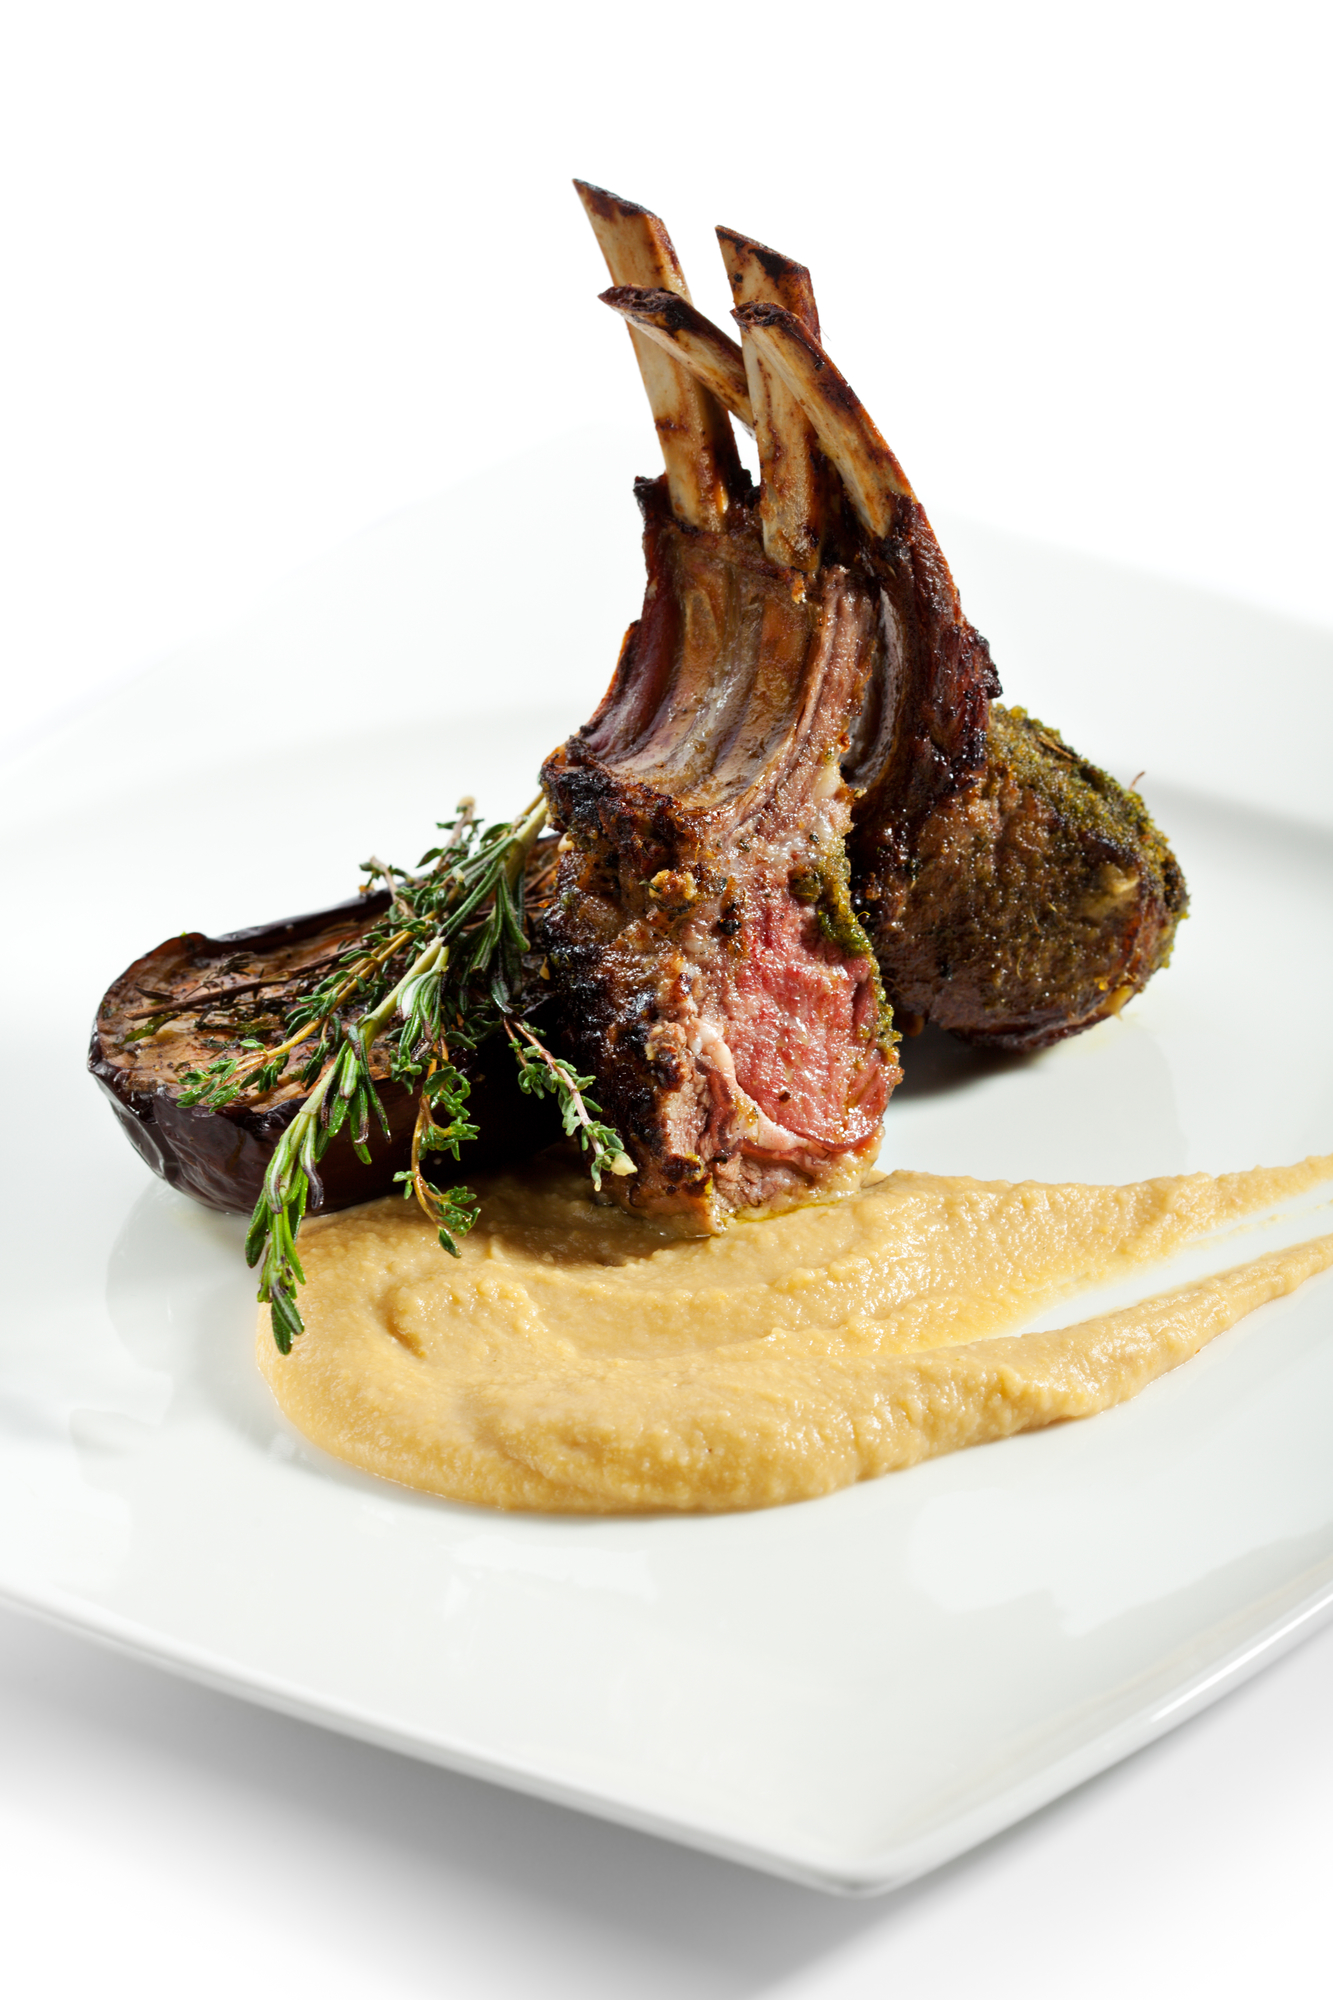 Grilled Rack of Lamb with Vegetables Sauce